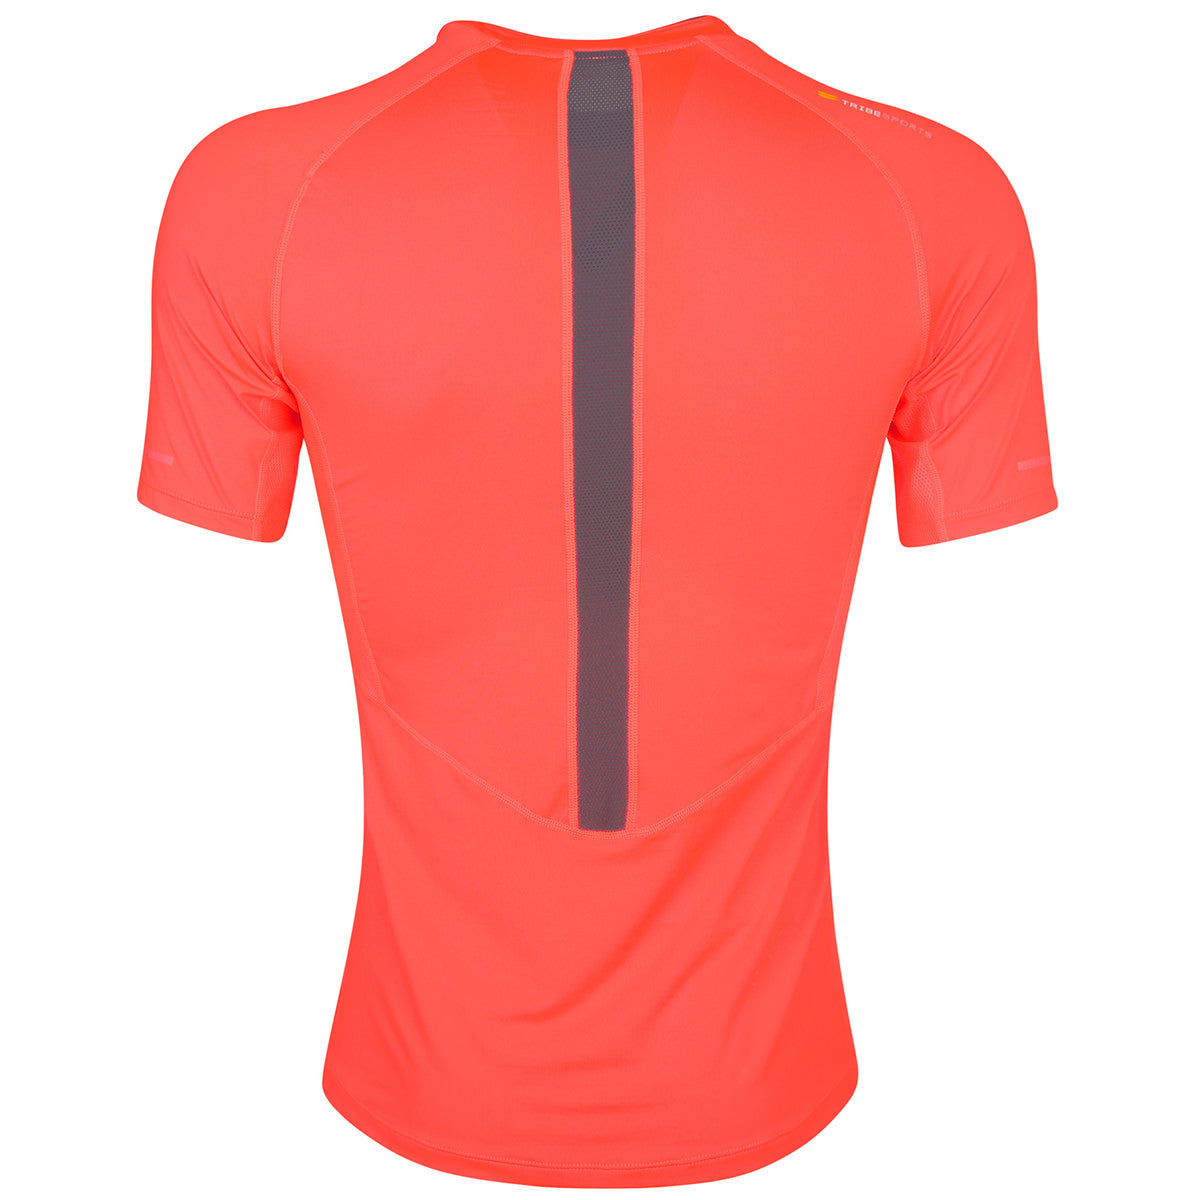 Men's Short Sleeve Running Top - Fire Red , Tribesports - 2